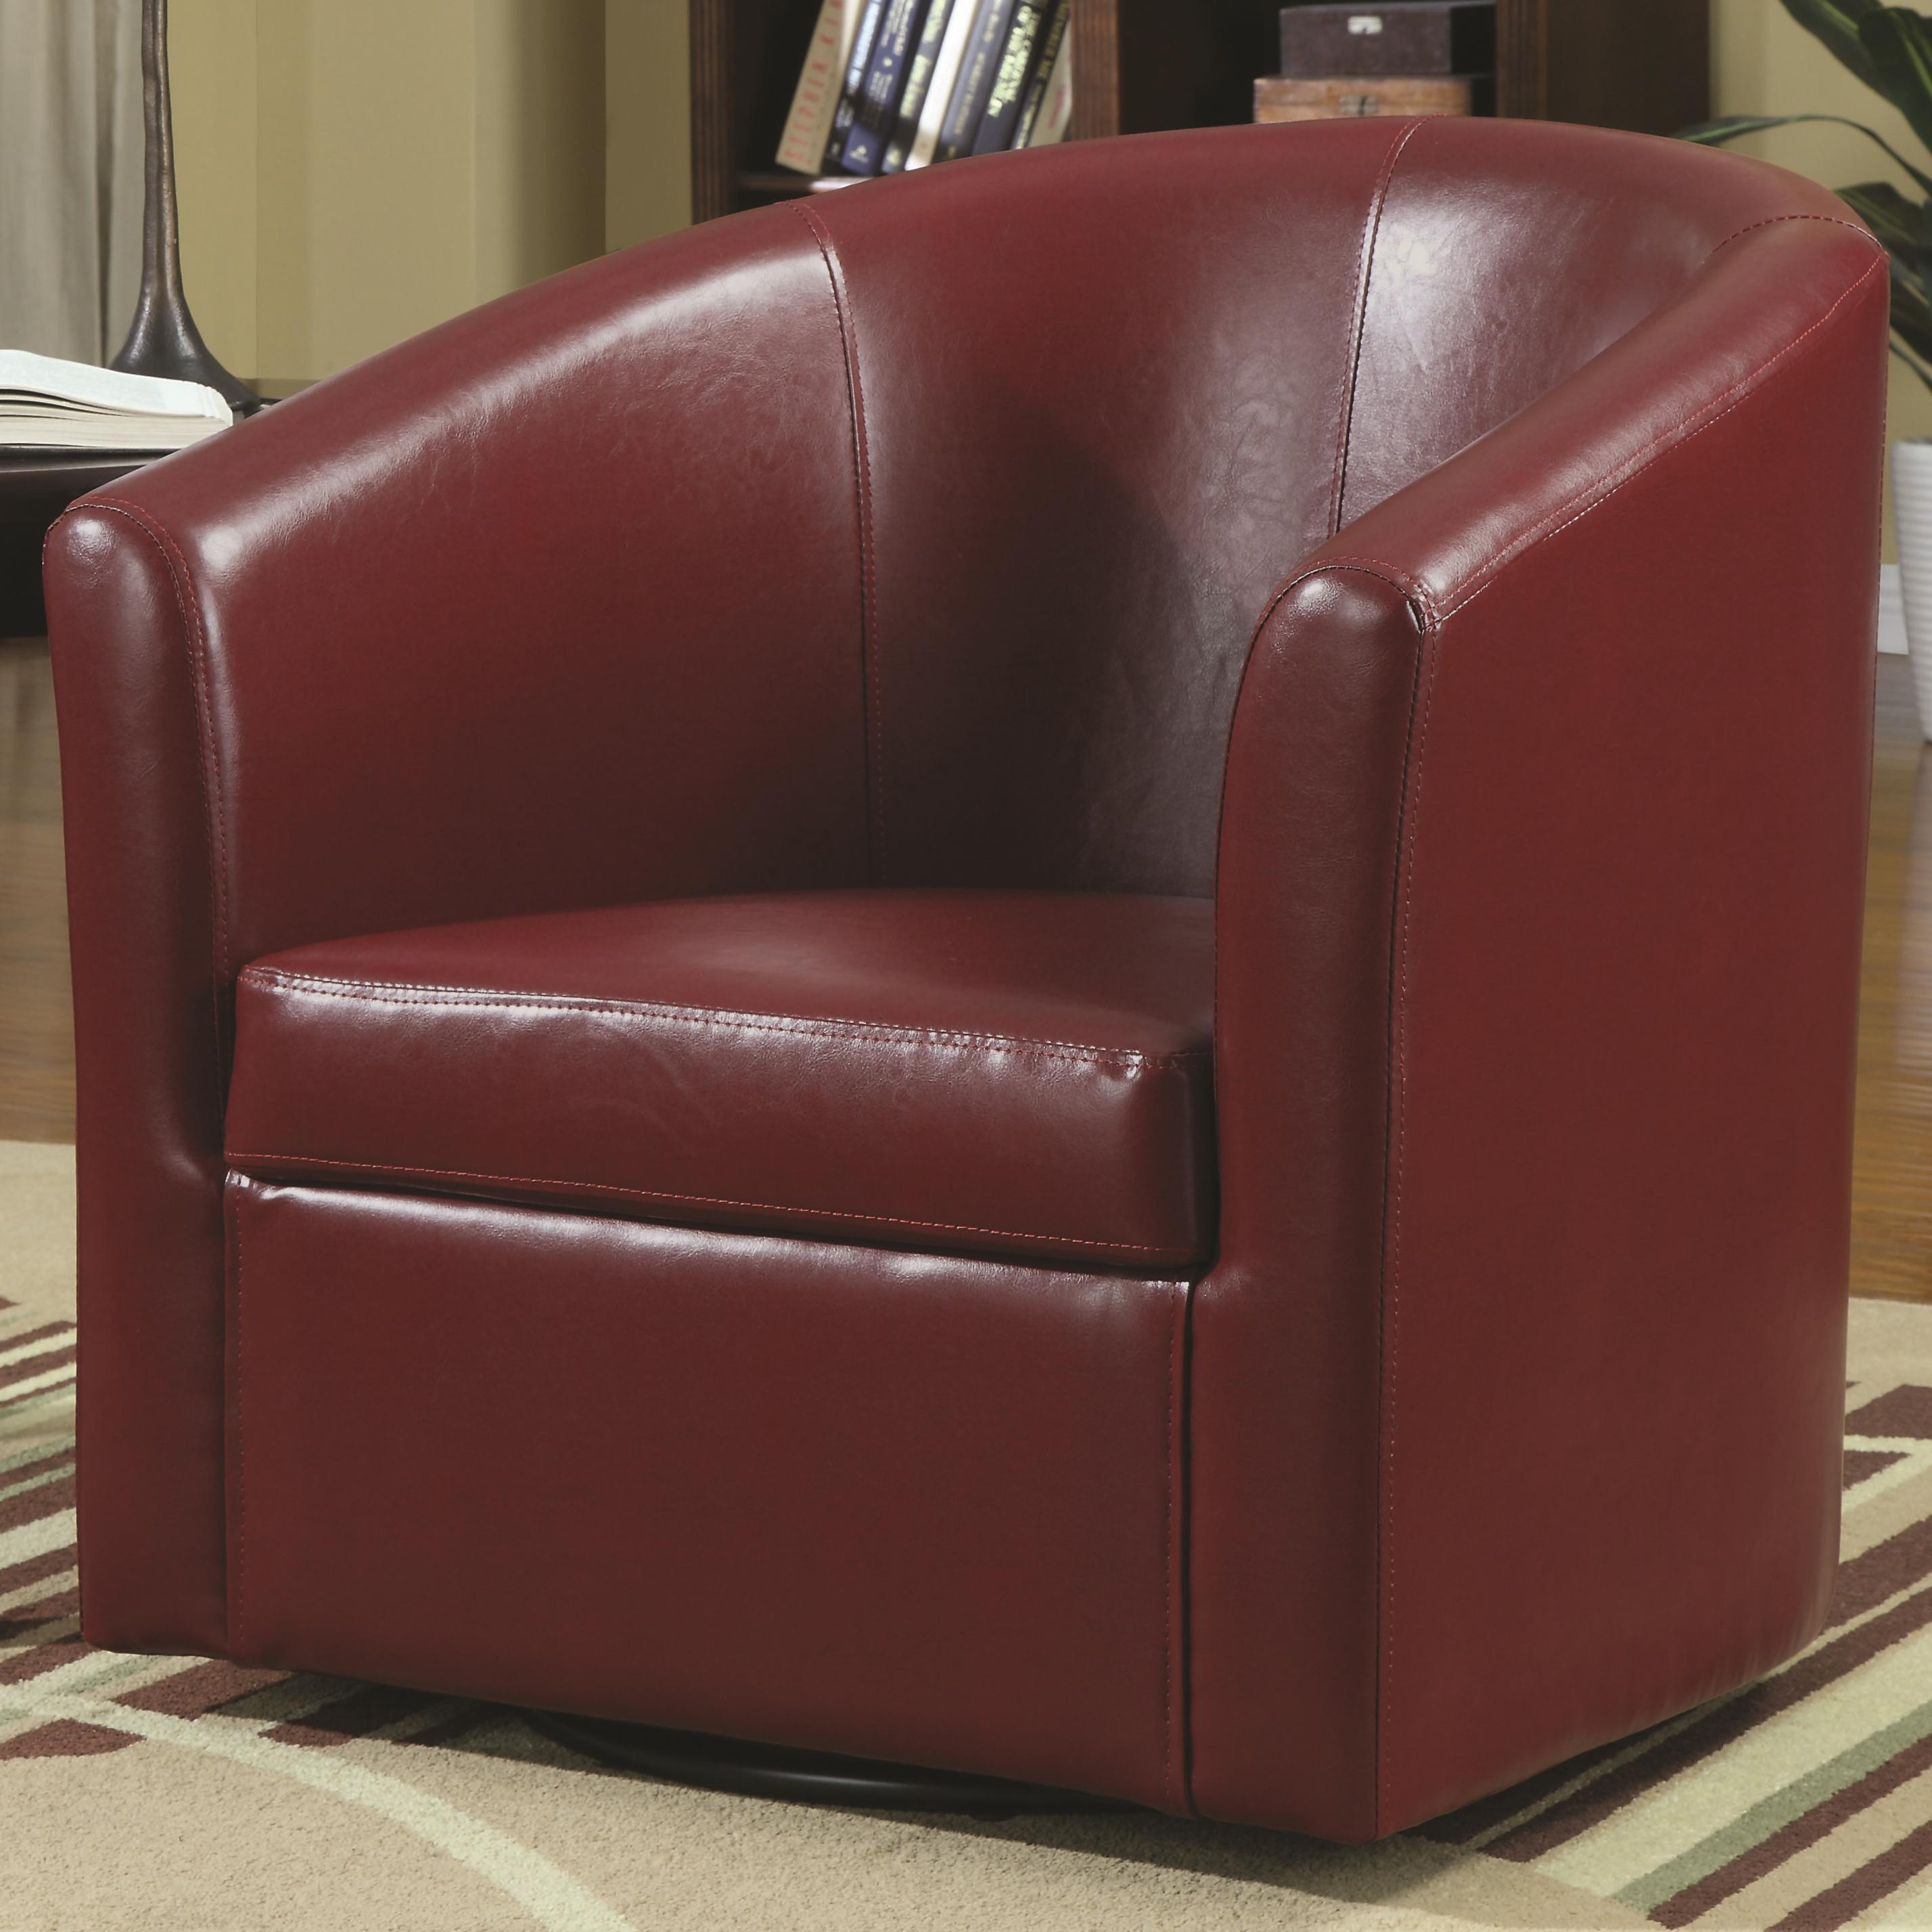 Red Leather Swivel Chair Accent Seating Contemporary Styled Accent Swivel Chair By Coaster At Dunk Bright Furniture